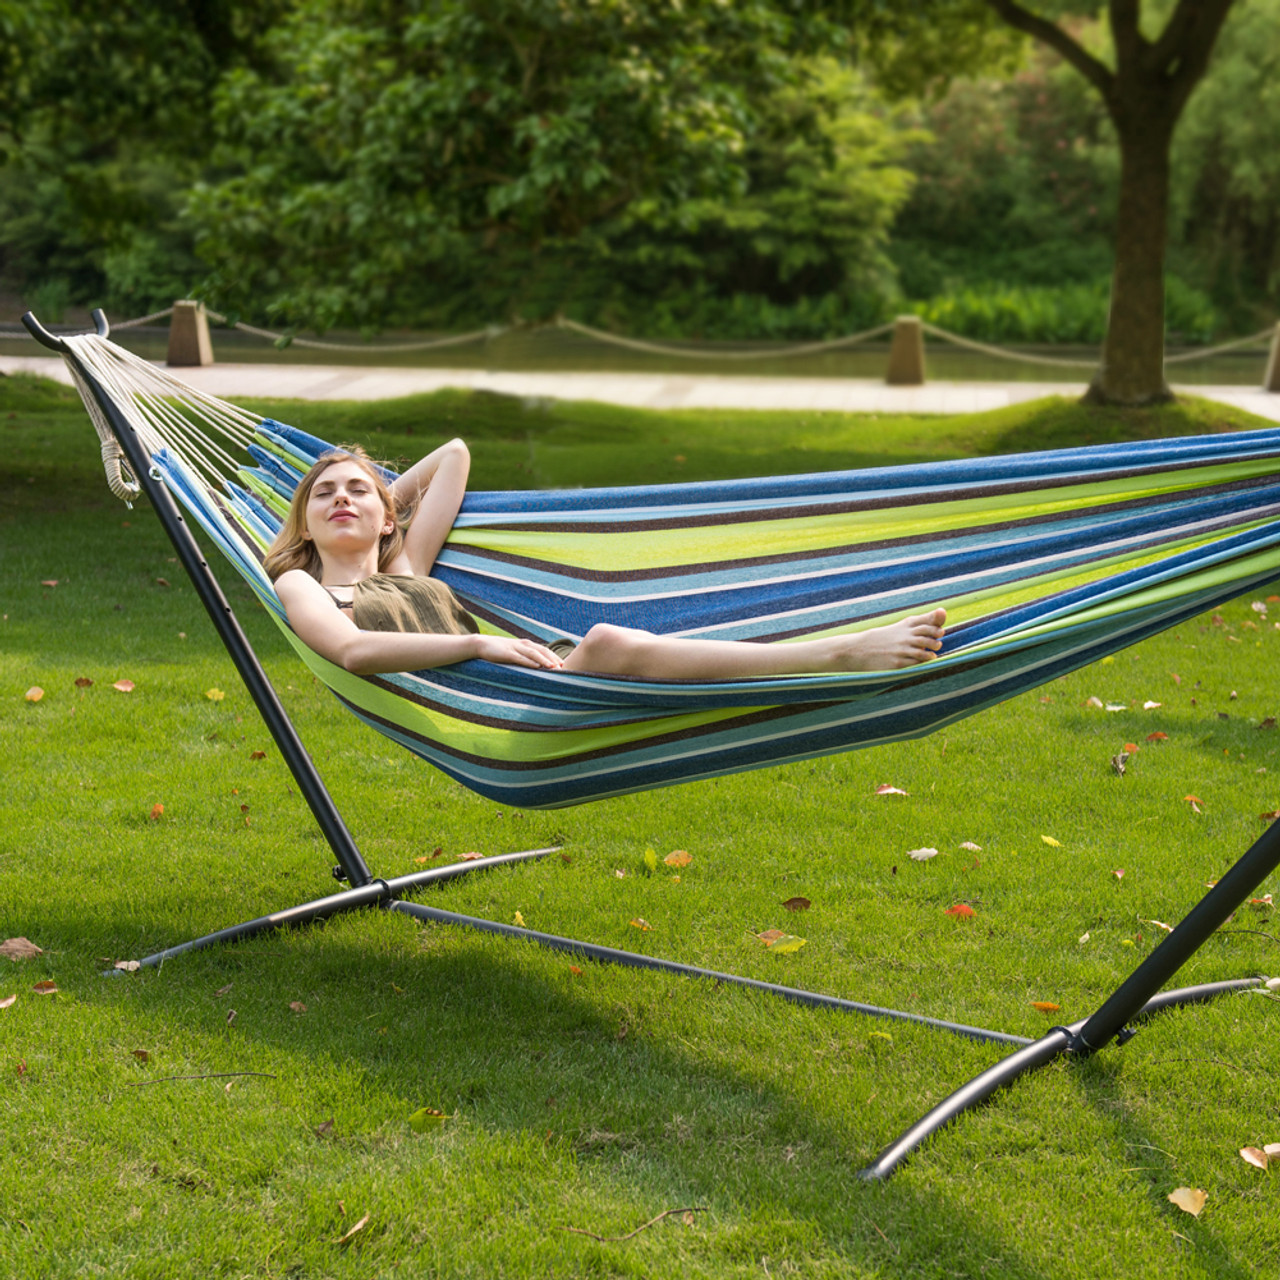 lazy daze hammocks double hammock with space saving steel stand includes portable carrying case 450 pounds capacity     daze hammocks double hammock with space saving steel stand      rh   lazydazehammocks